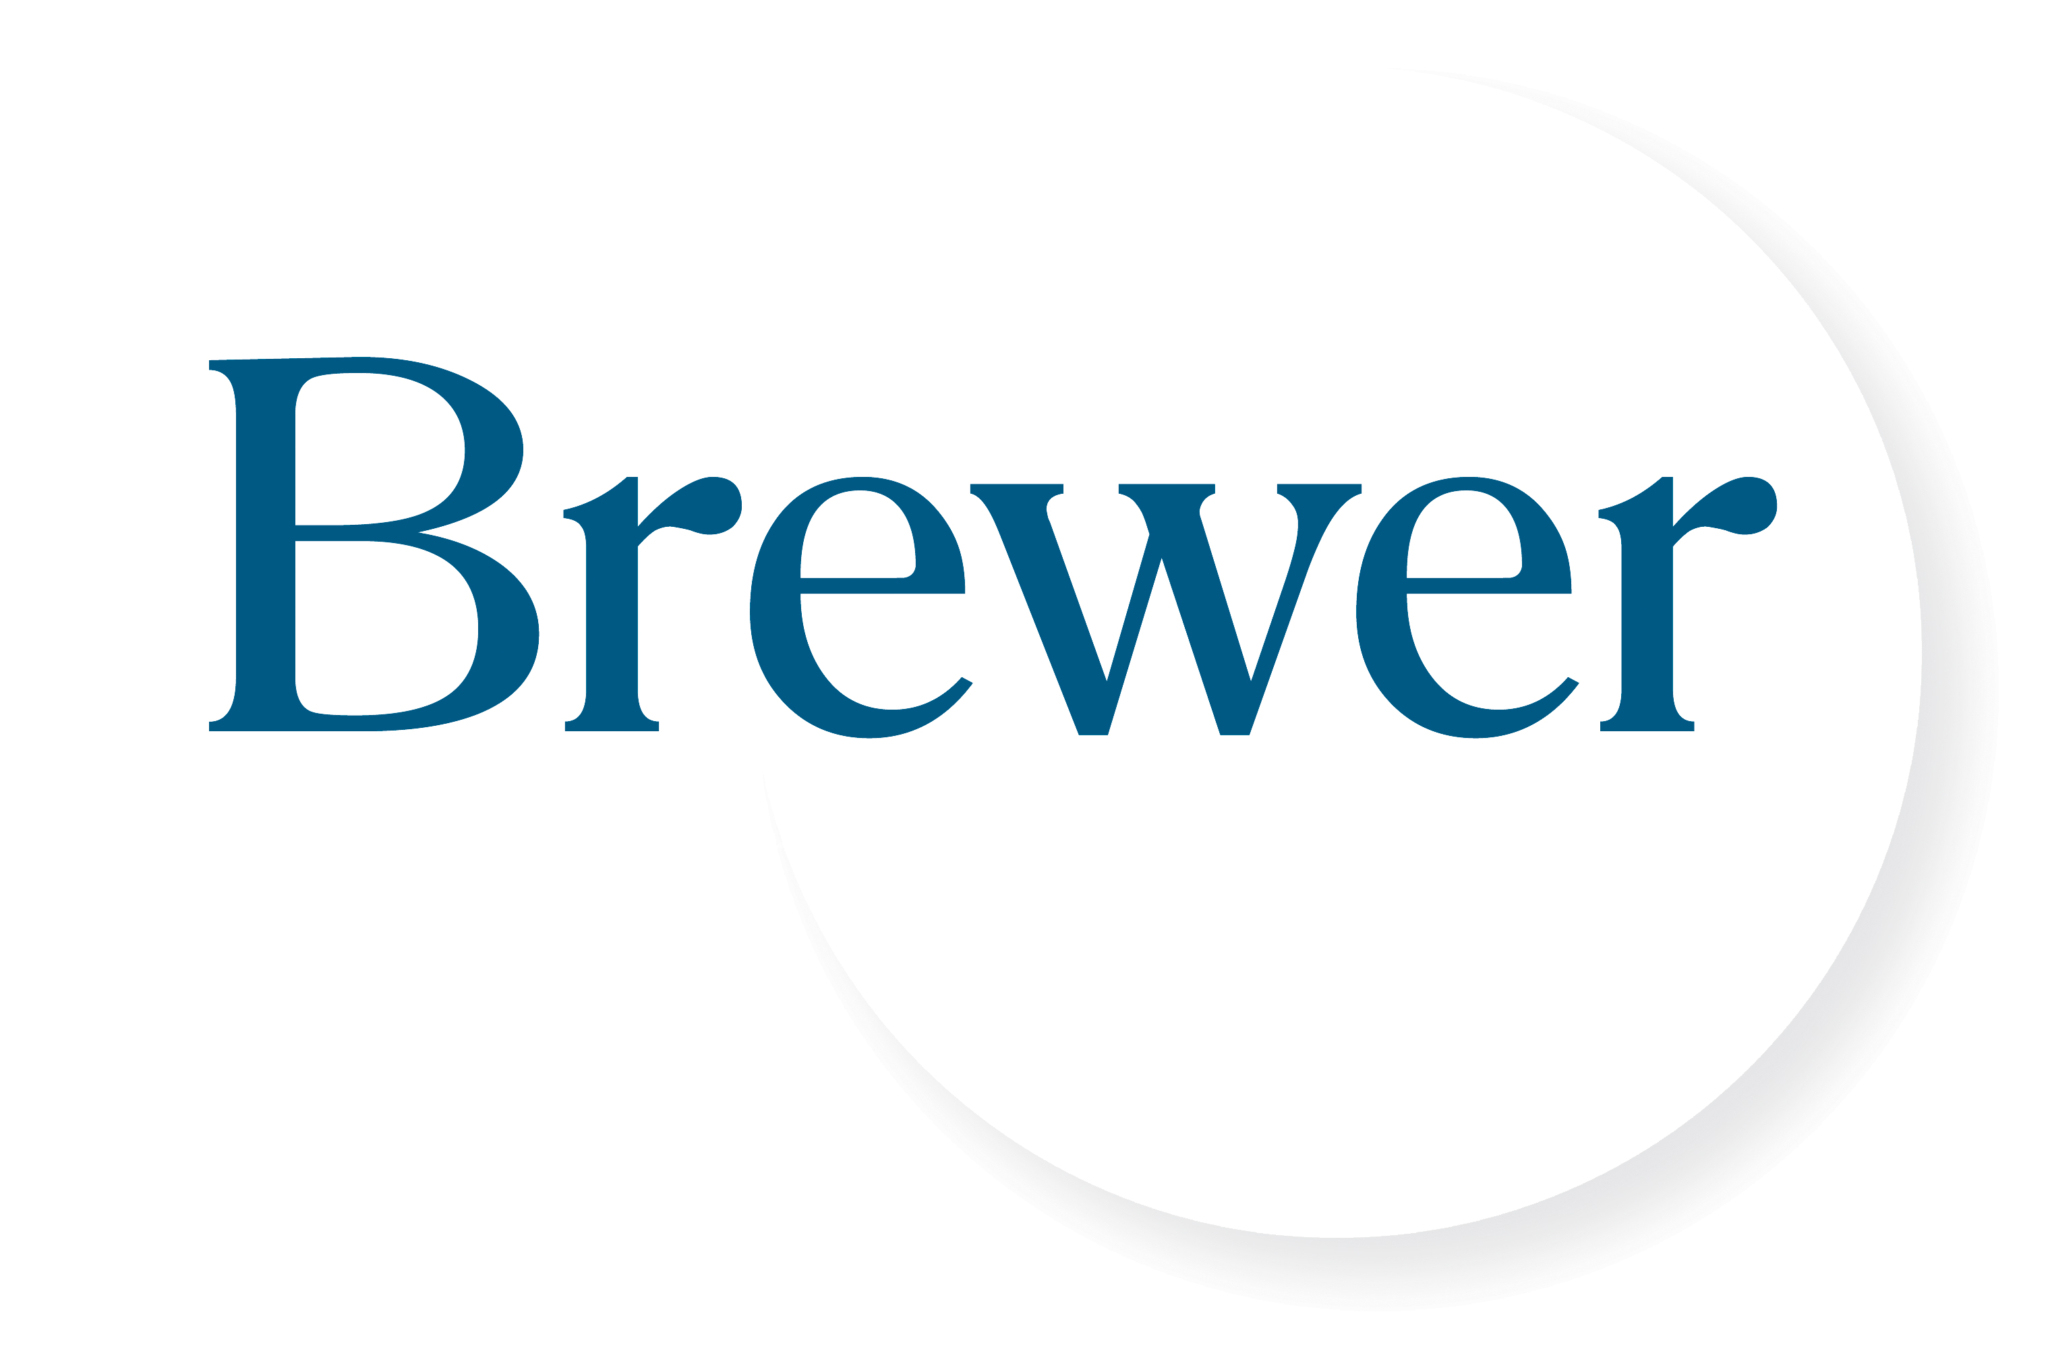 Brewer Logo Swish Only Brewer Company